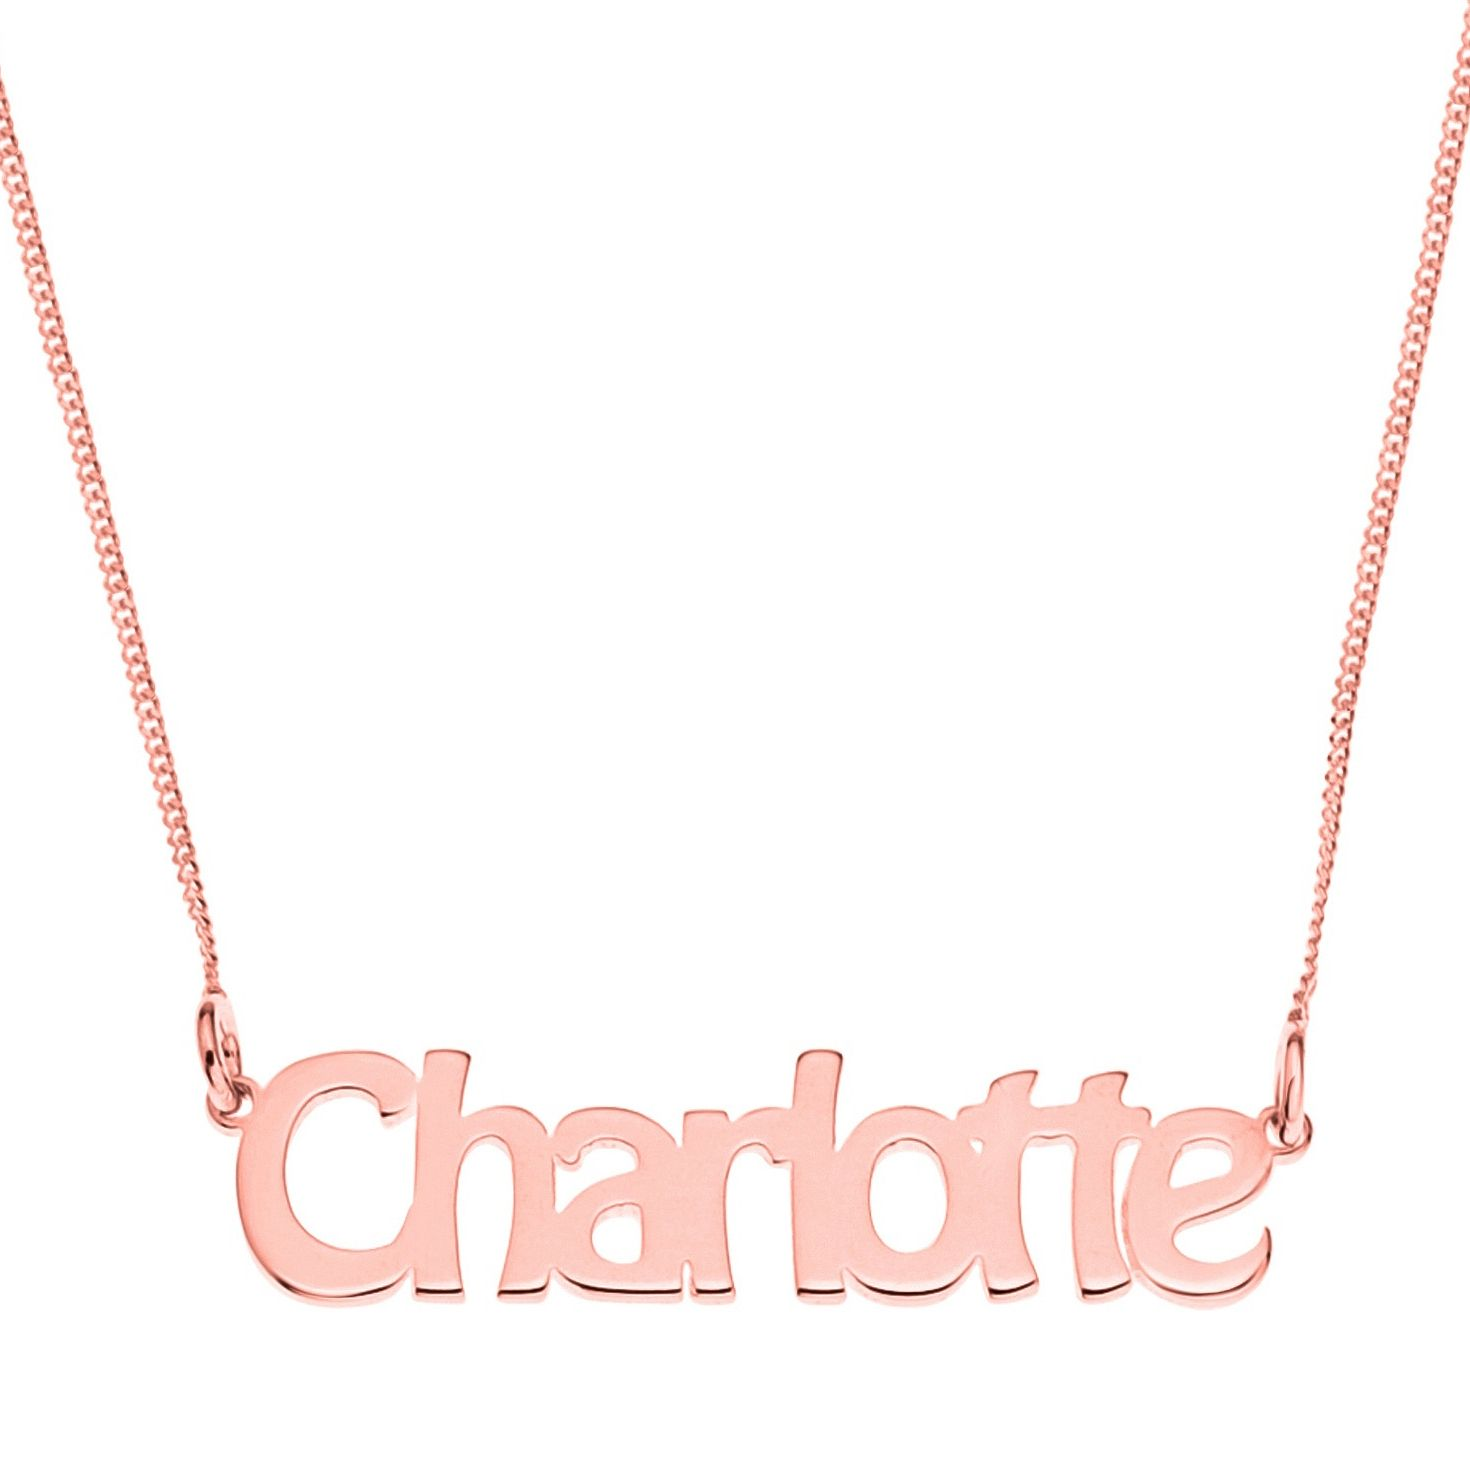 Rose Gold Plated Silver Charlotte Nameplate Necklace - Product number 4105109